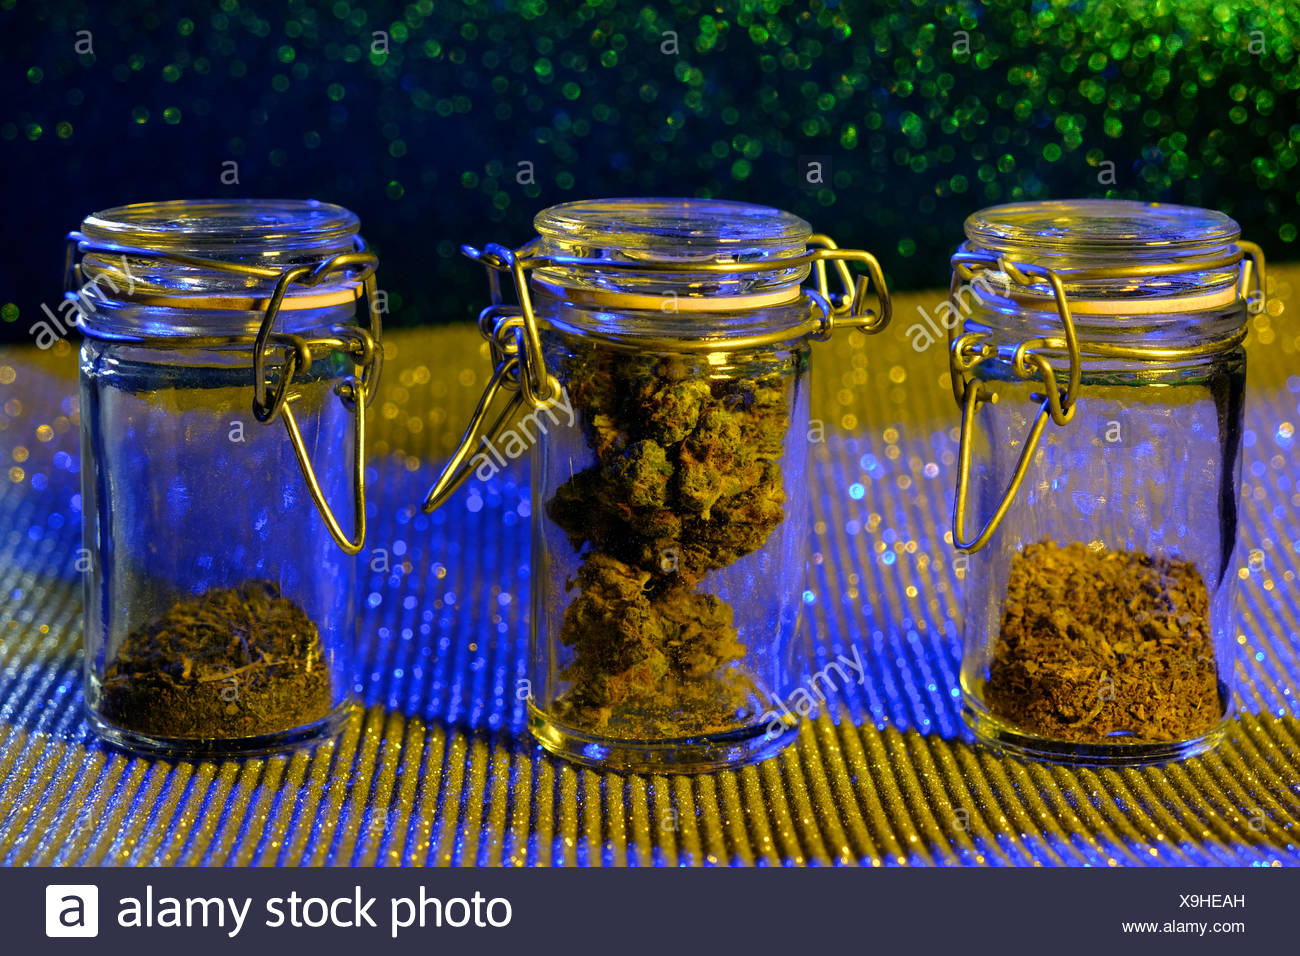 A stylized image of cannabis or marijuana in glass jars. - Stock Image